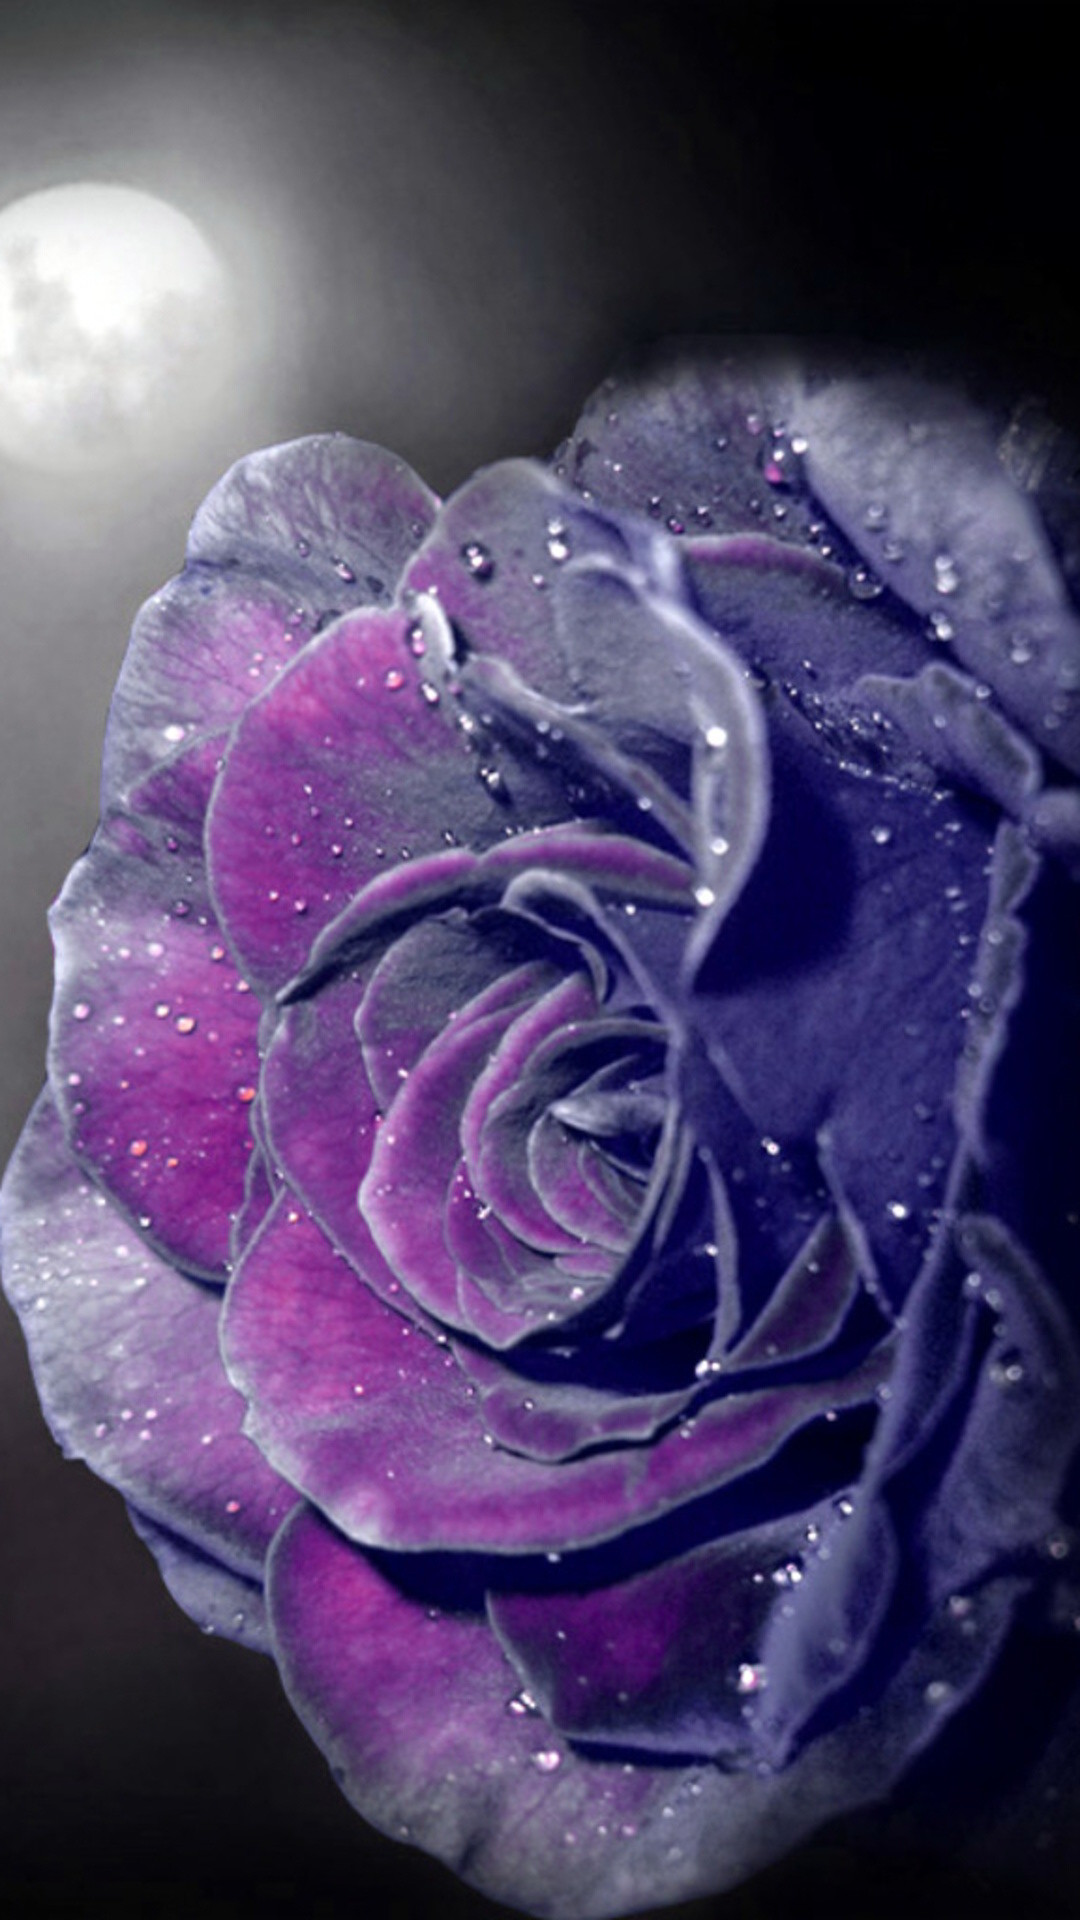 1920x1080 Preview Wallpaper Violet, Flowers, Close Up, Petals 1920x1080